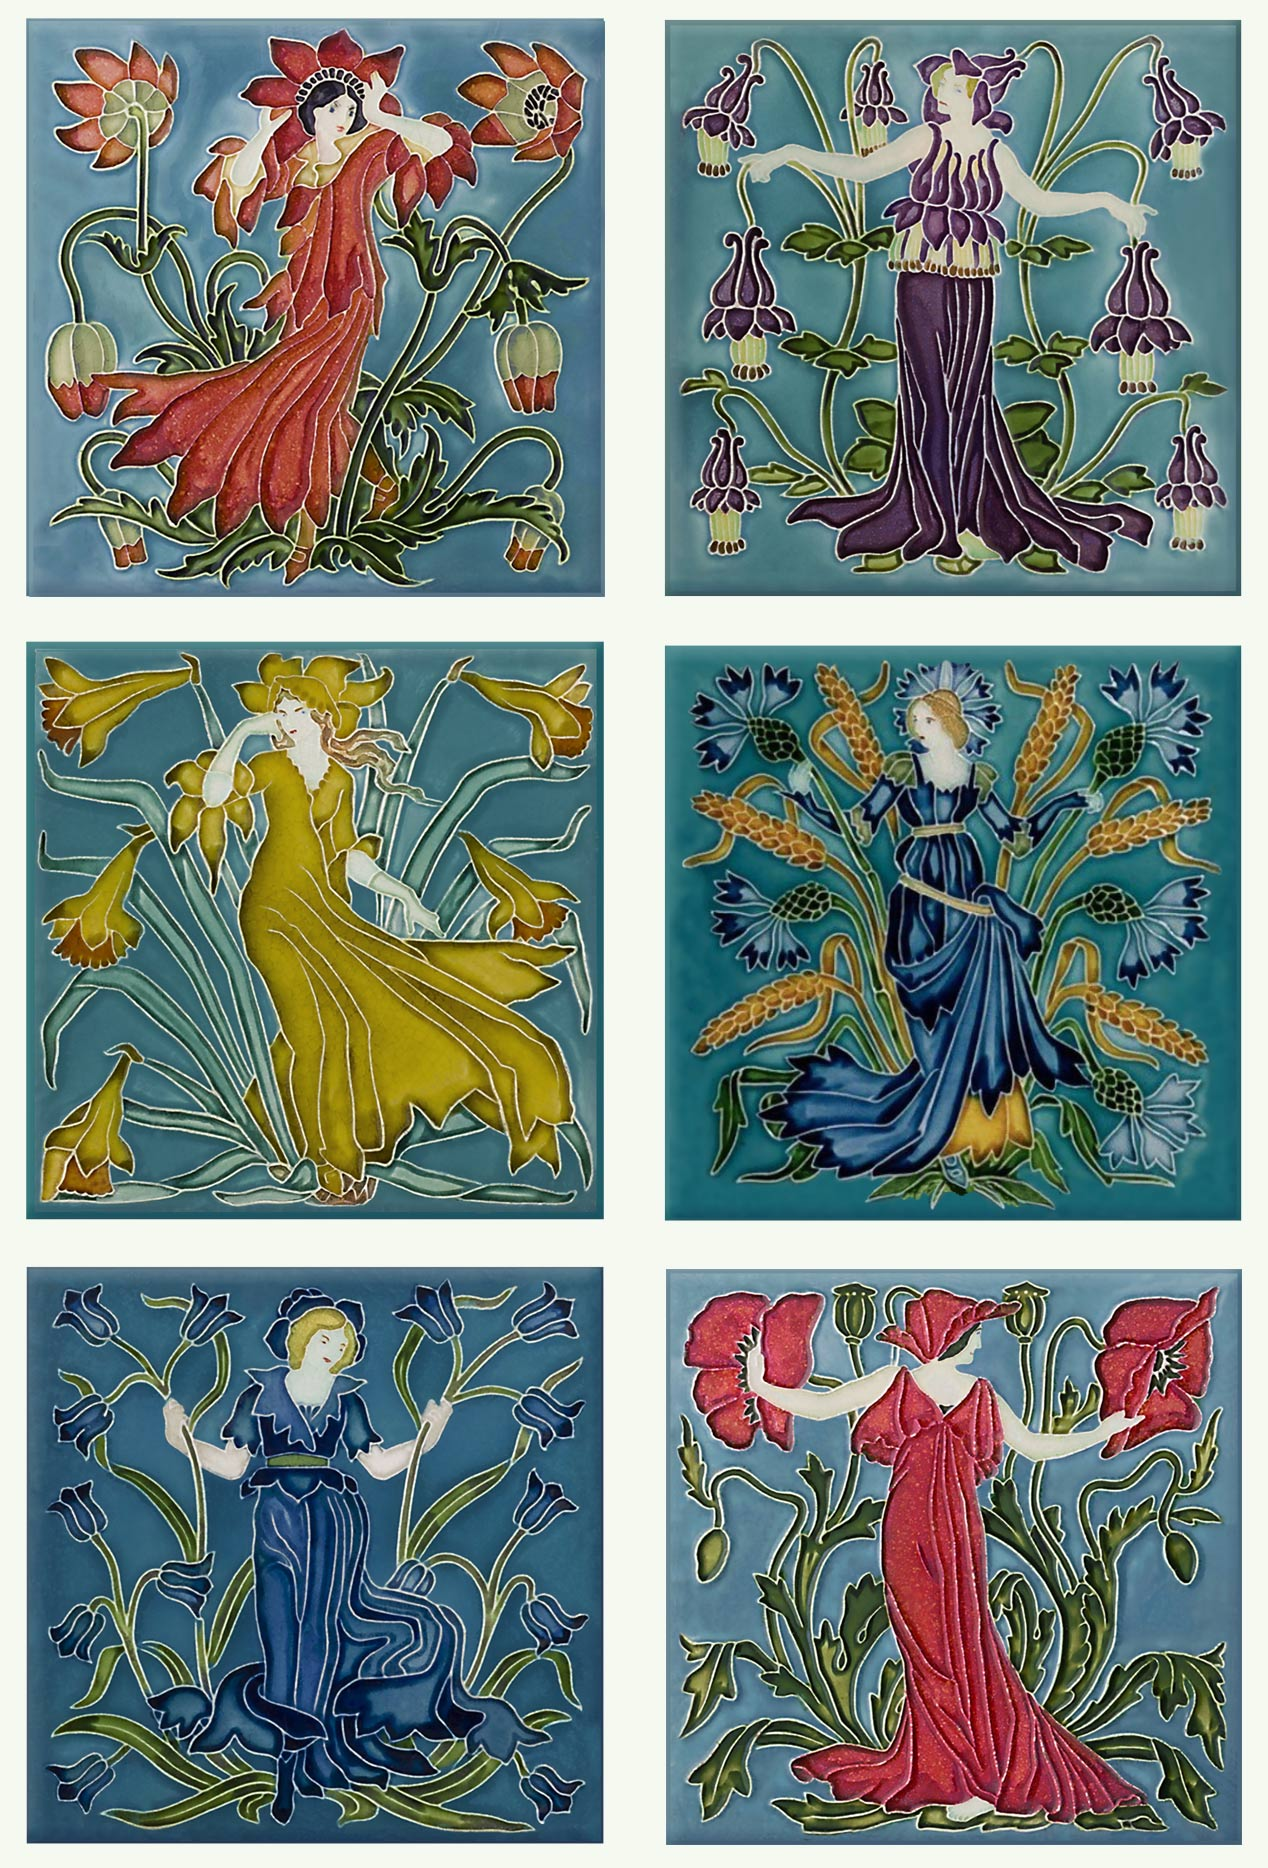 Art Nouveau Wikipedia Why Arts Crafts Is Not Craftsman William Morris And The Arts